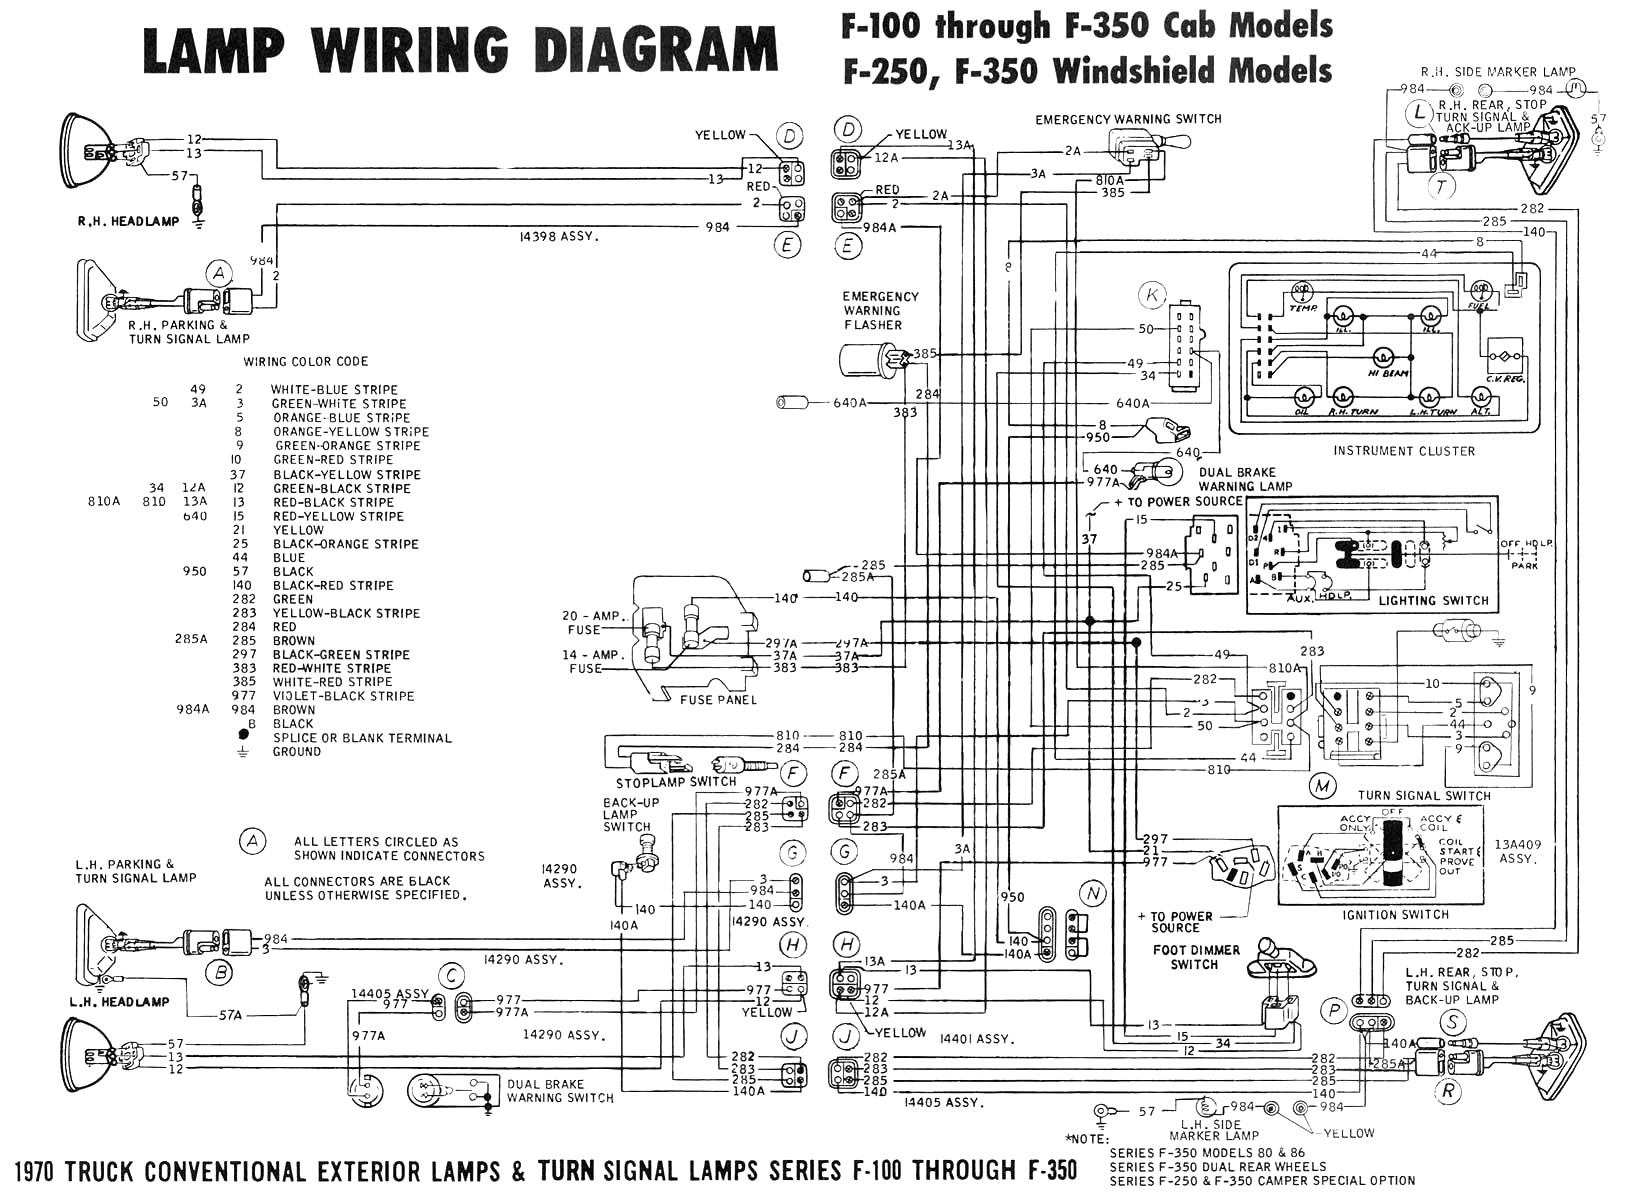 harness likewise diagram of 2000 dodge ram 1500 fuel system on 2002 dodge durango power window diagram as well 99 ford ranger fuel